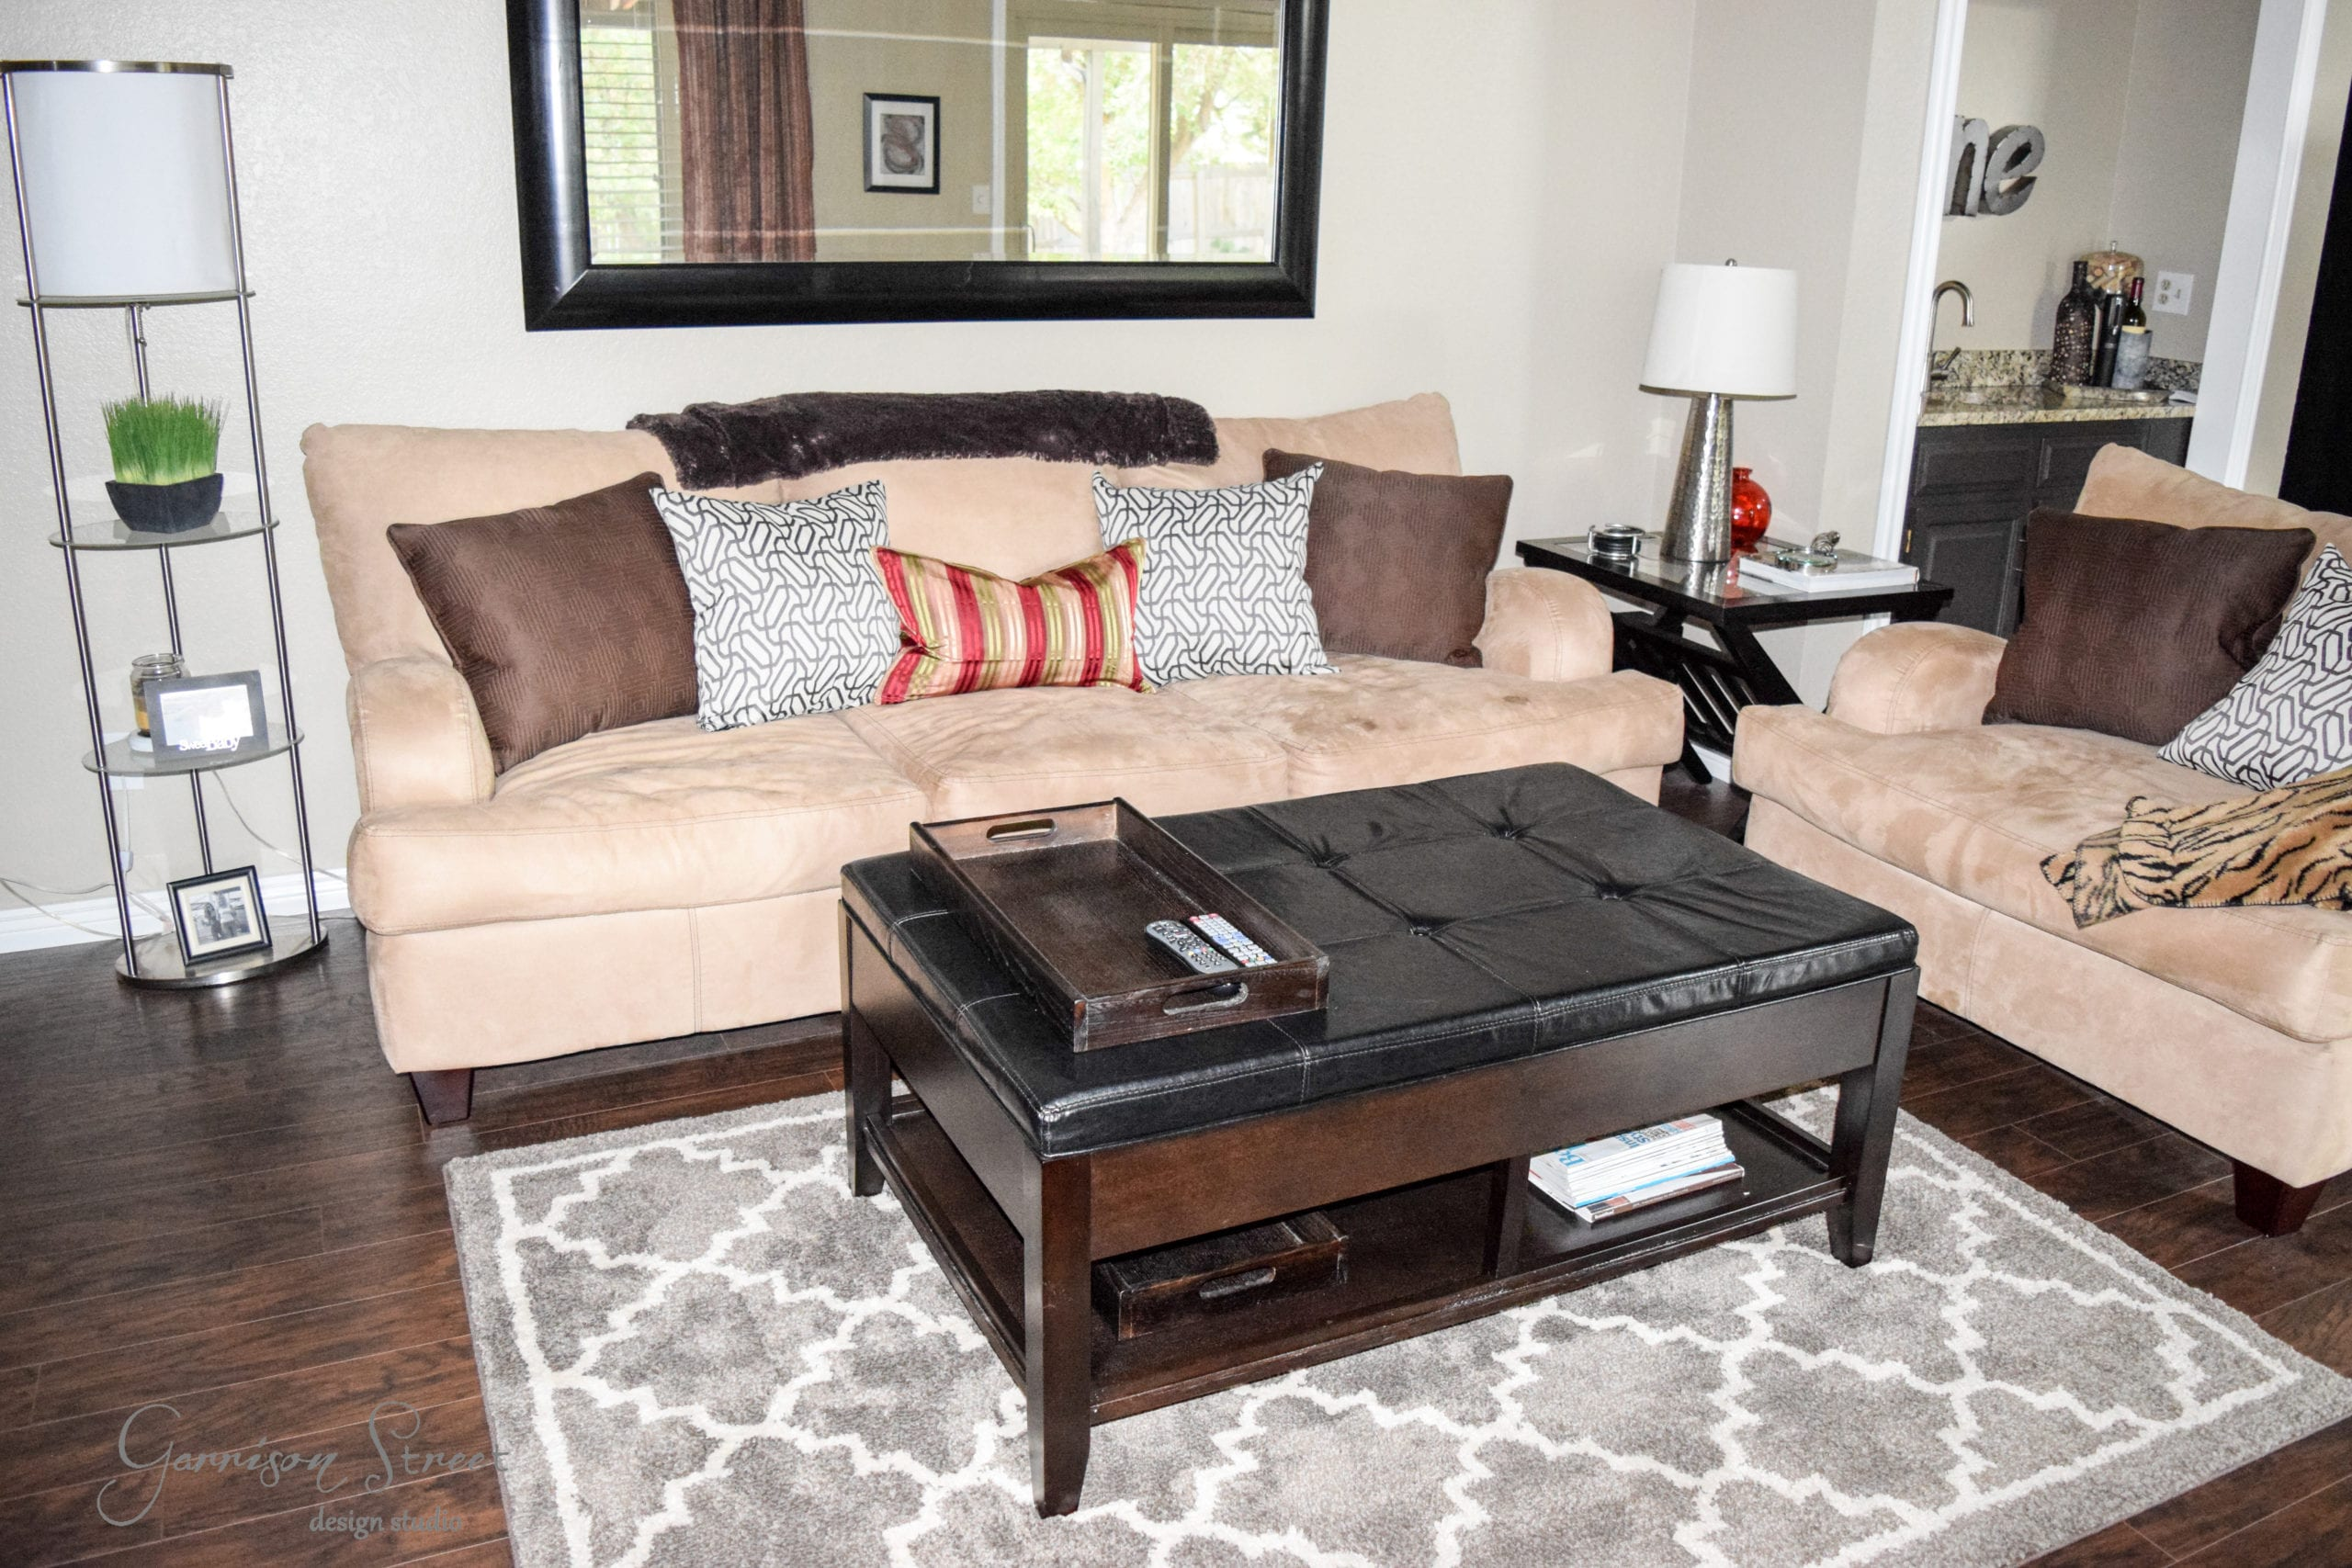 Ready, Set, Move In Part II - Family Room Update